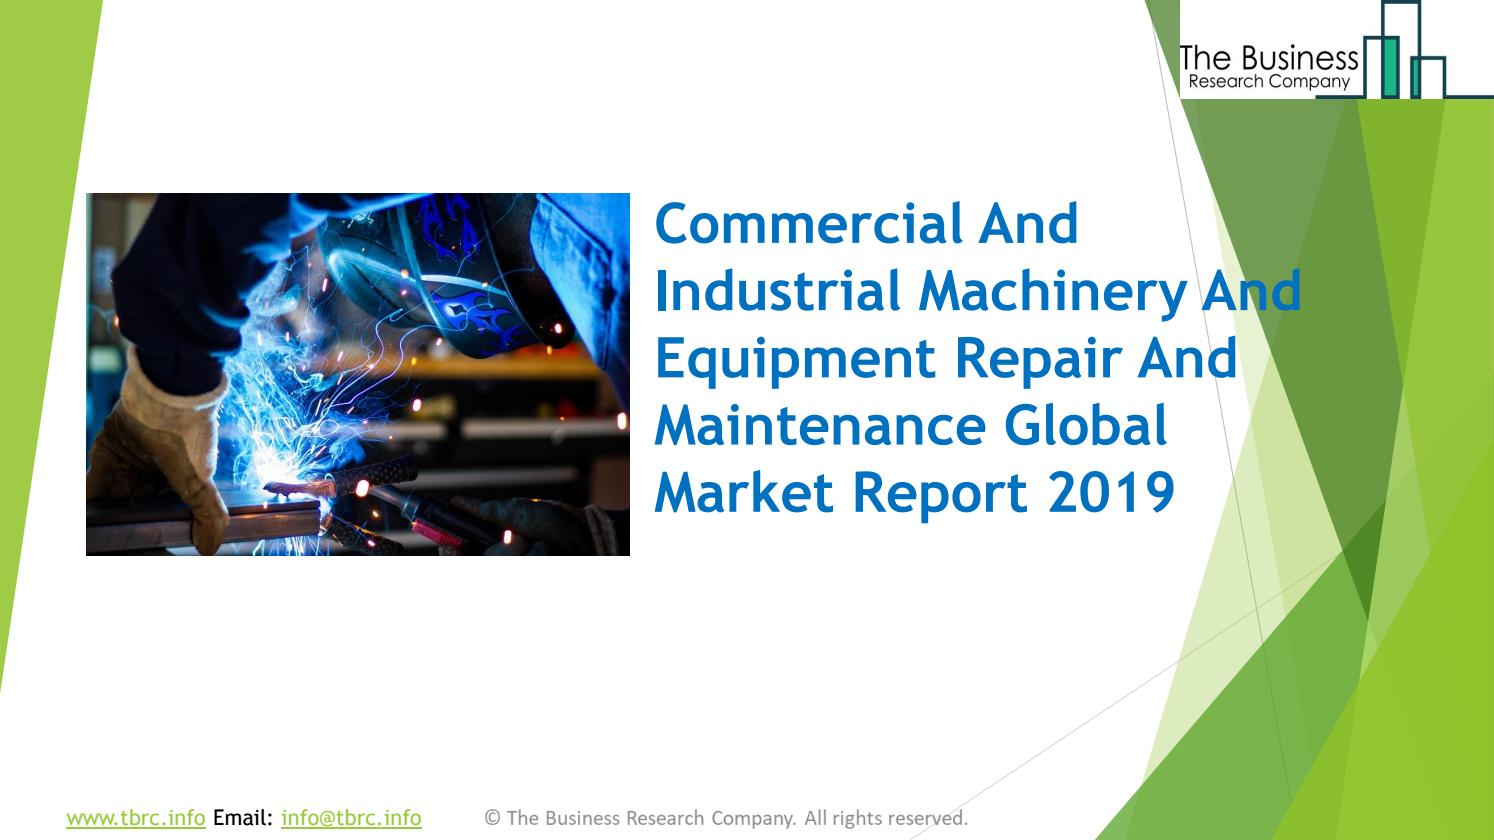 Commercial And Industrial Machinery And Equipment Repair And Maintenance  Market Size, Growth, Driver by Sreeramakrishna TBRC - issuu